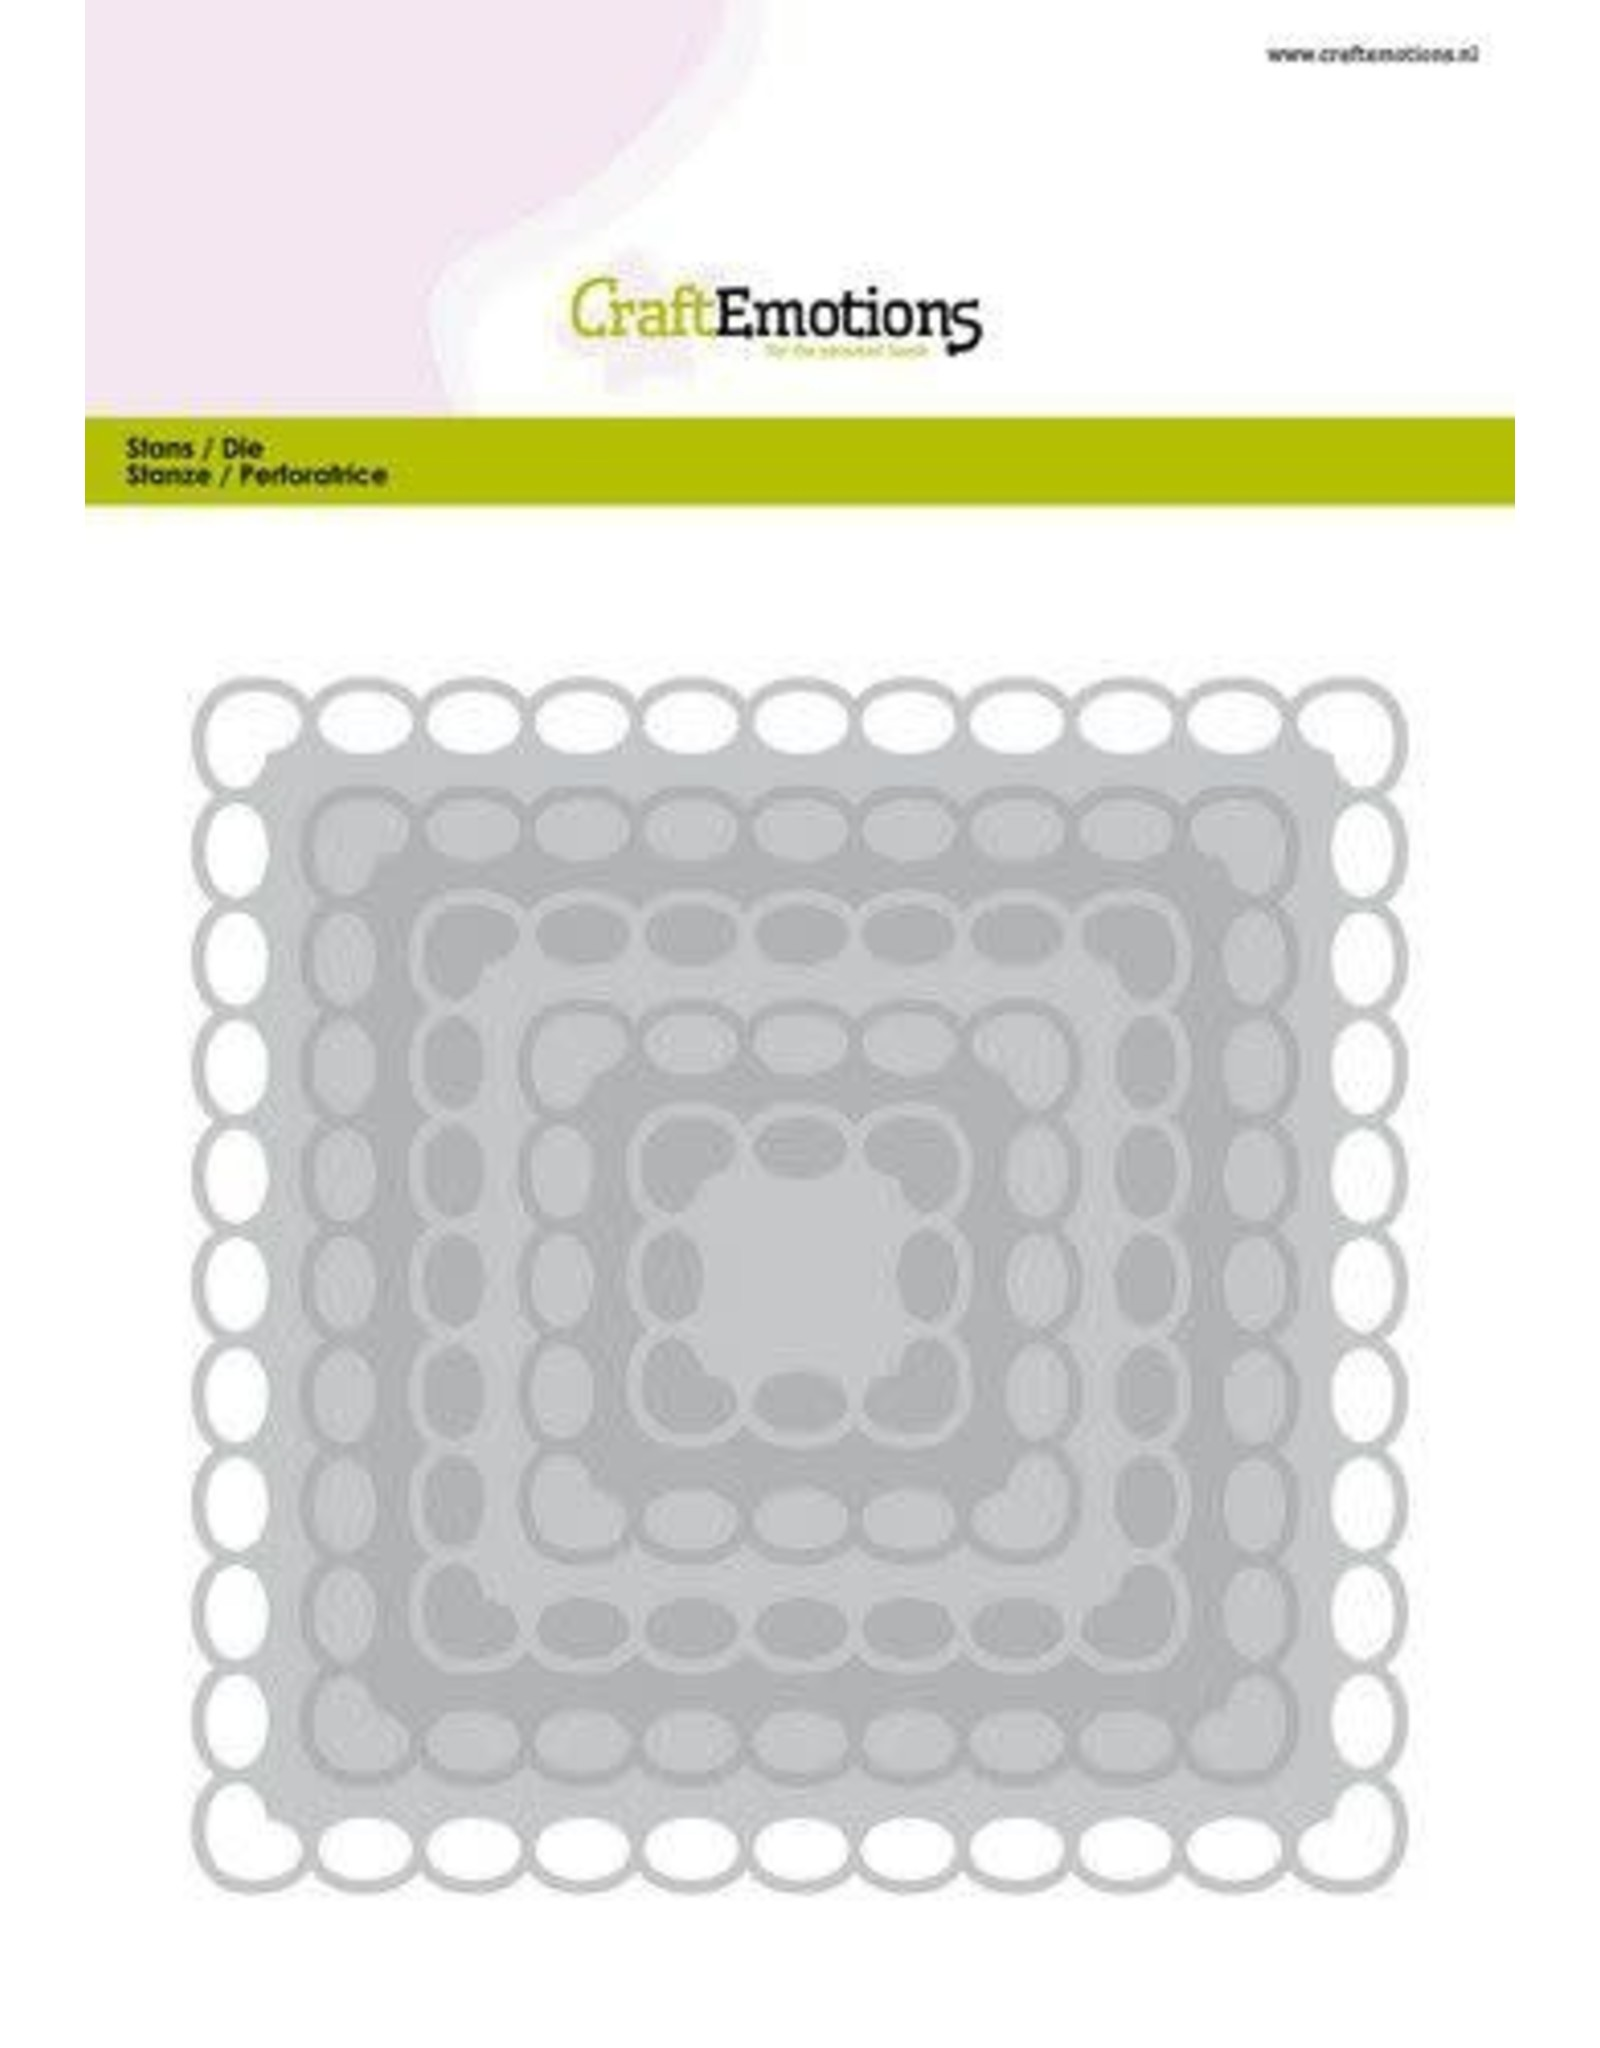 Craft Emotions CraftEmotions Big Nesting Die - vierkanten scalop XL oval Card 150x160 6,8-15,0cm